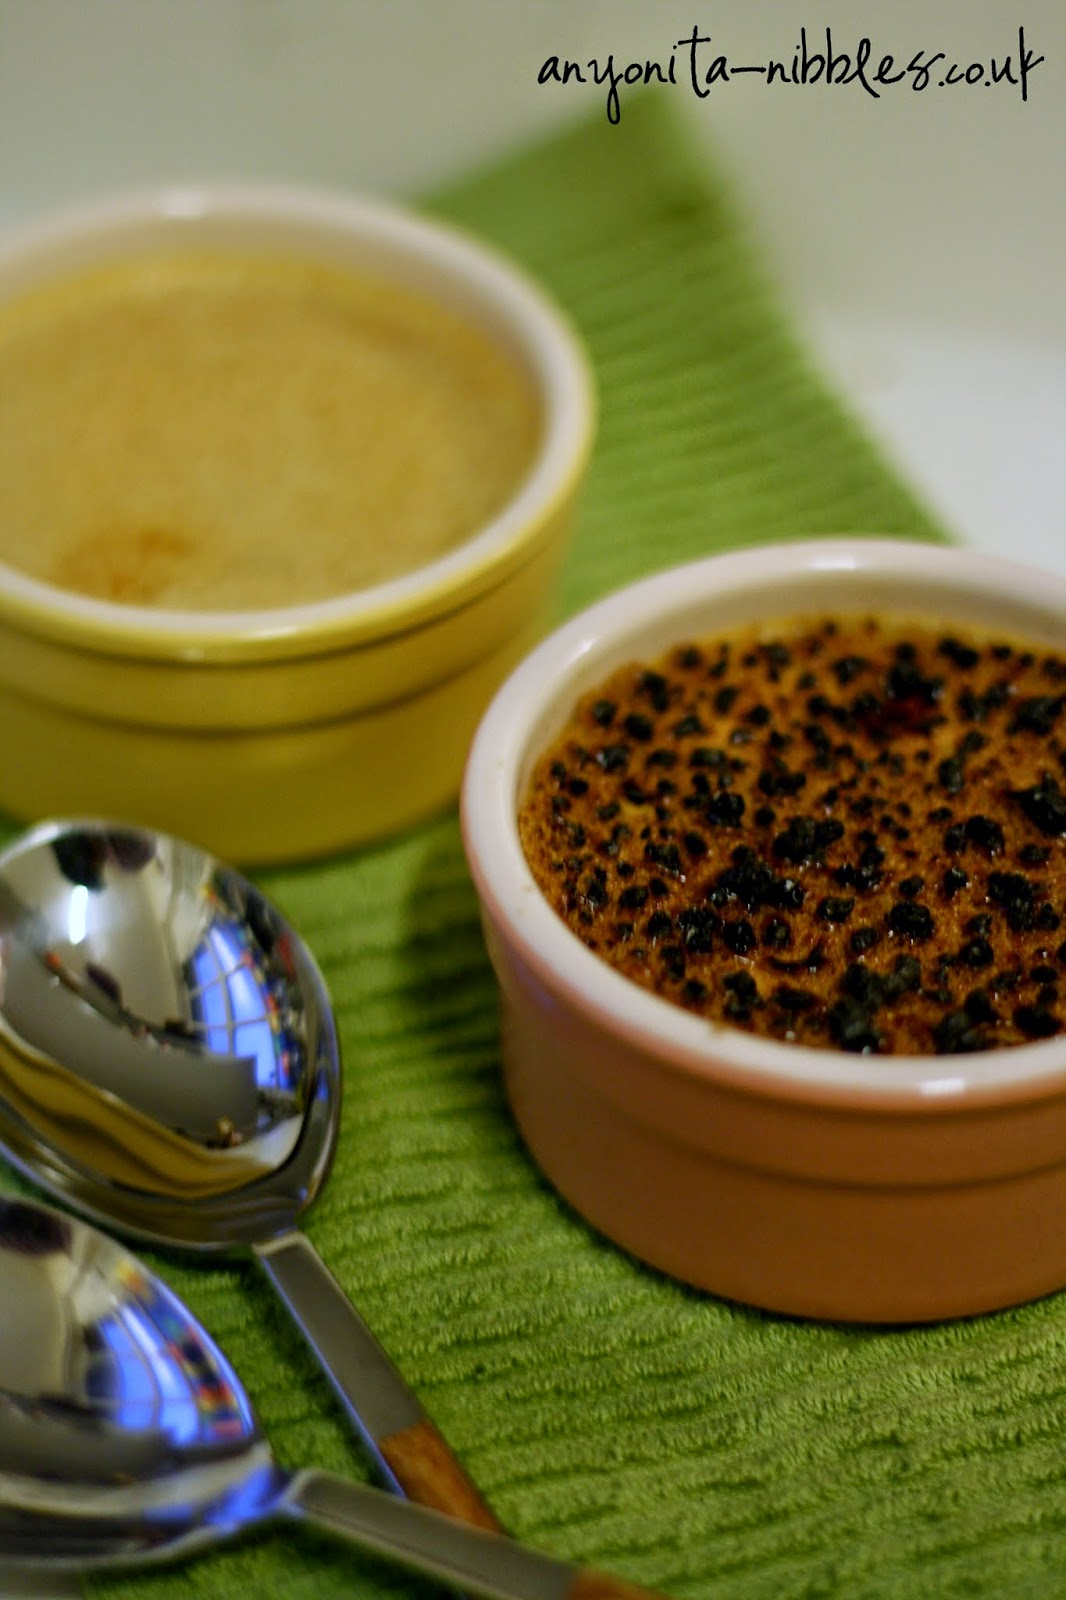 Two pumpkin-spice brulee desserts from anyonita-nibbles.co.uk